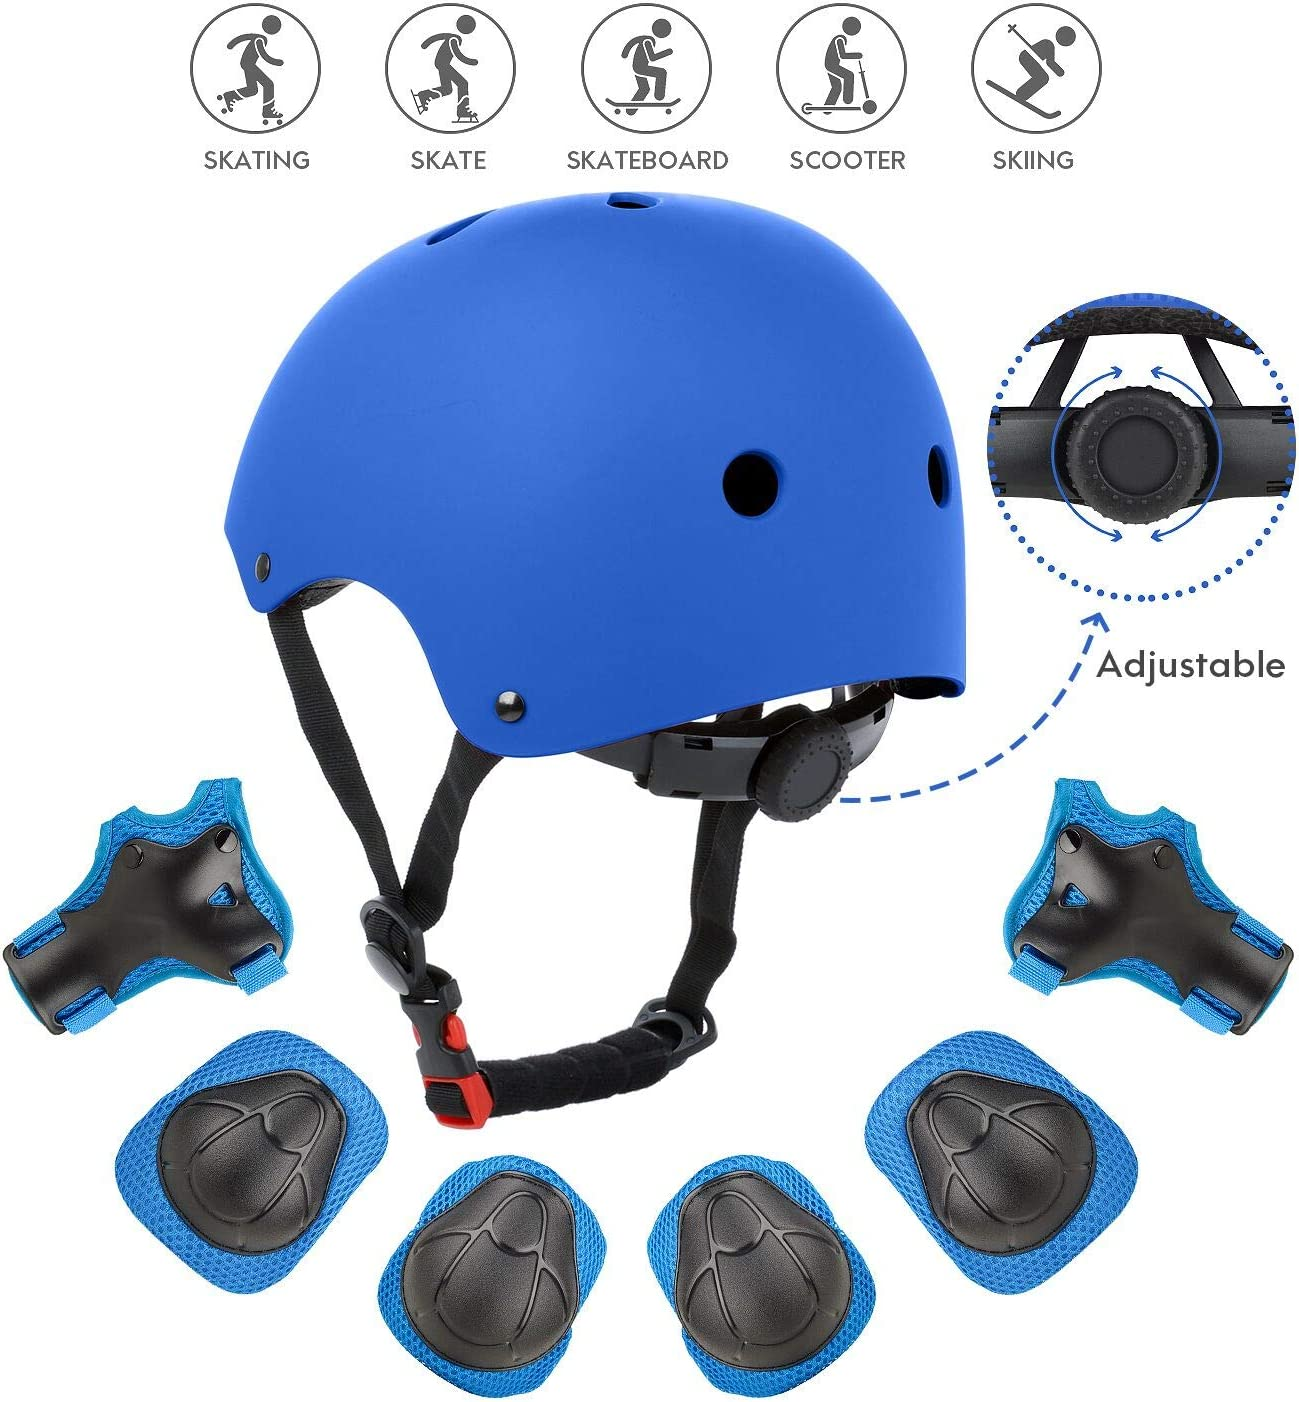 Kids Adult Skate Skateboard Helmet /& Protector For Skate BMX Scooter Stunt CA